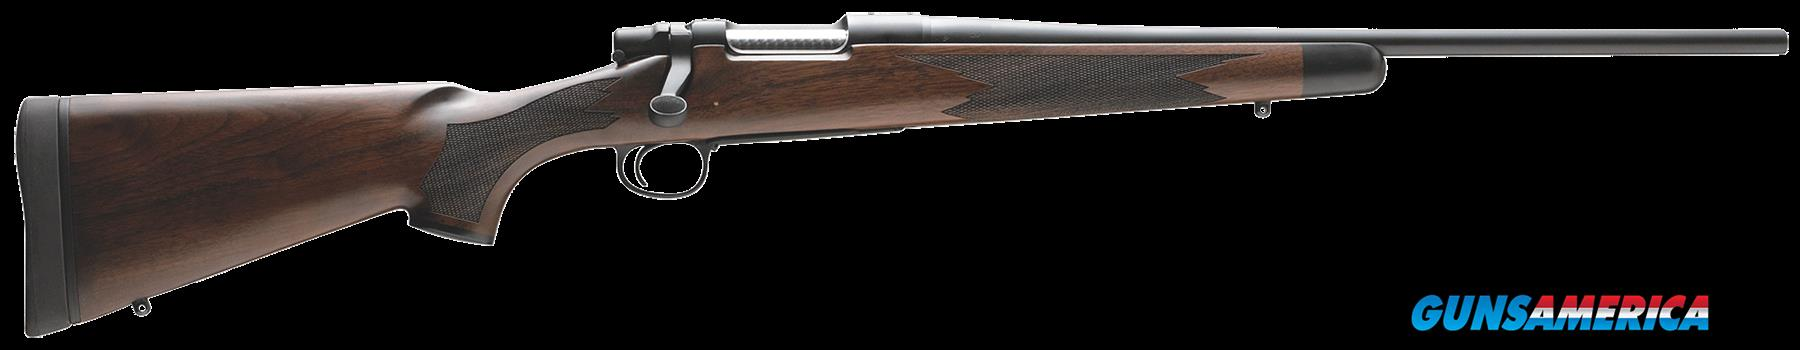 "Remington Firearms 26419 Seven CDL Bolt 260 Rem 20"" 4+1 American Walnut Stk Blued  Guns > Rifles > R Misc Rifles"